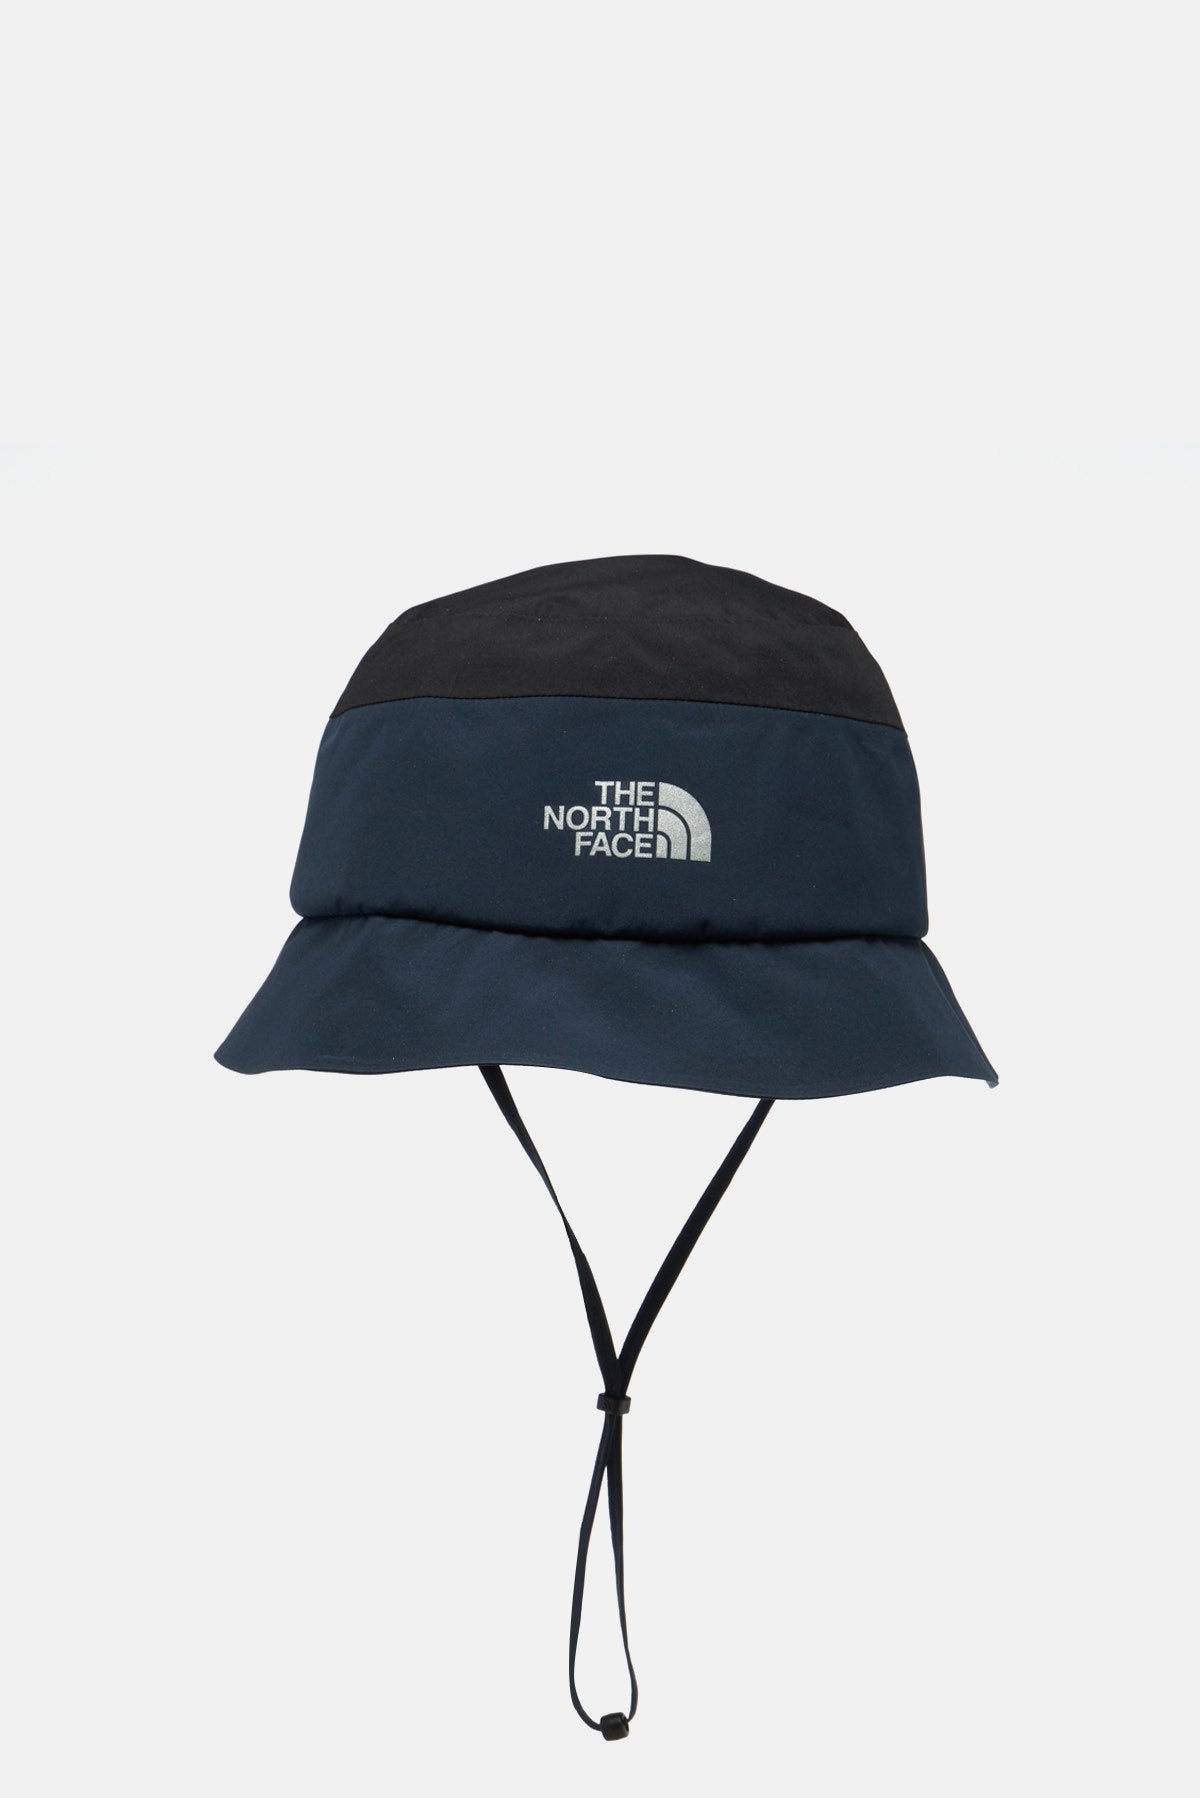 2a3843adbc641f North Face GoreTex Bucket Hat available from Priory